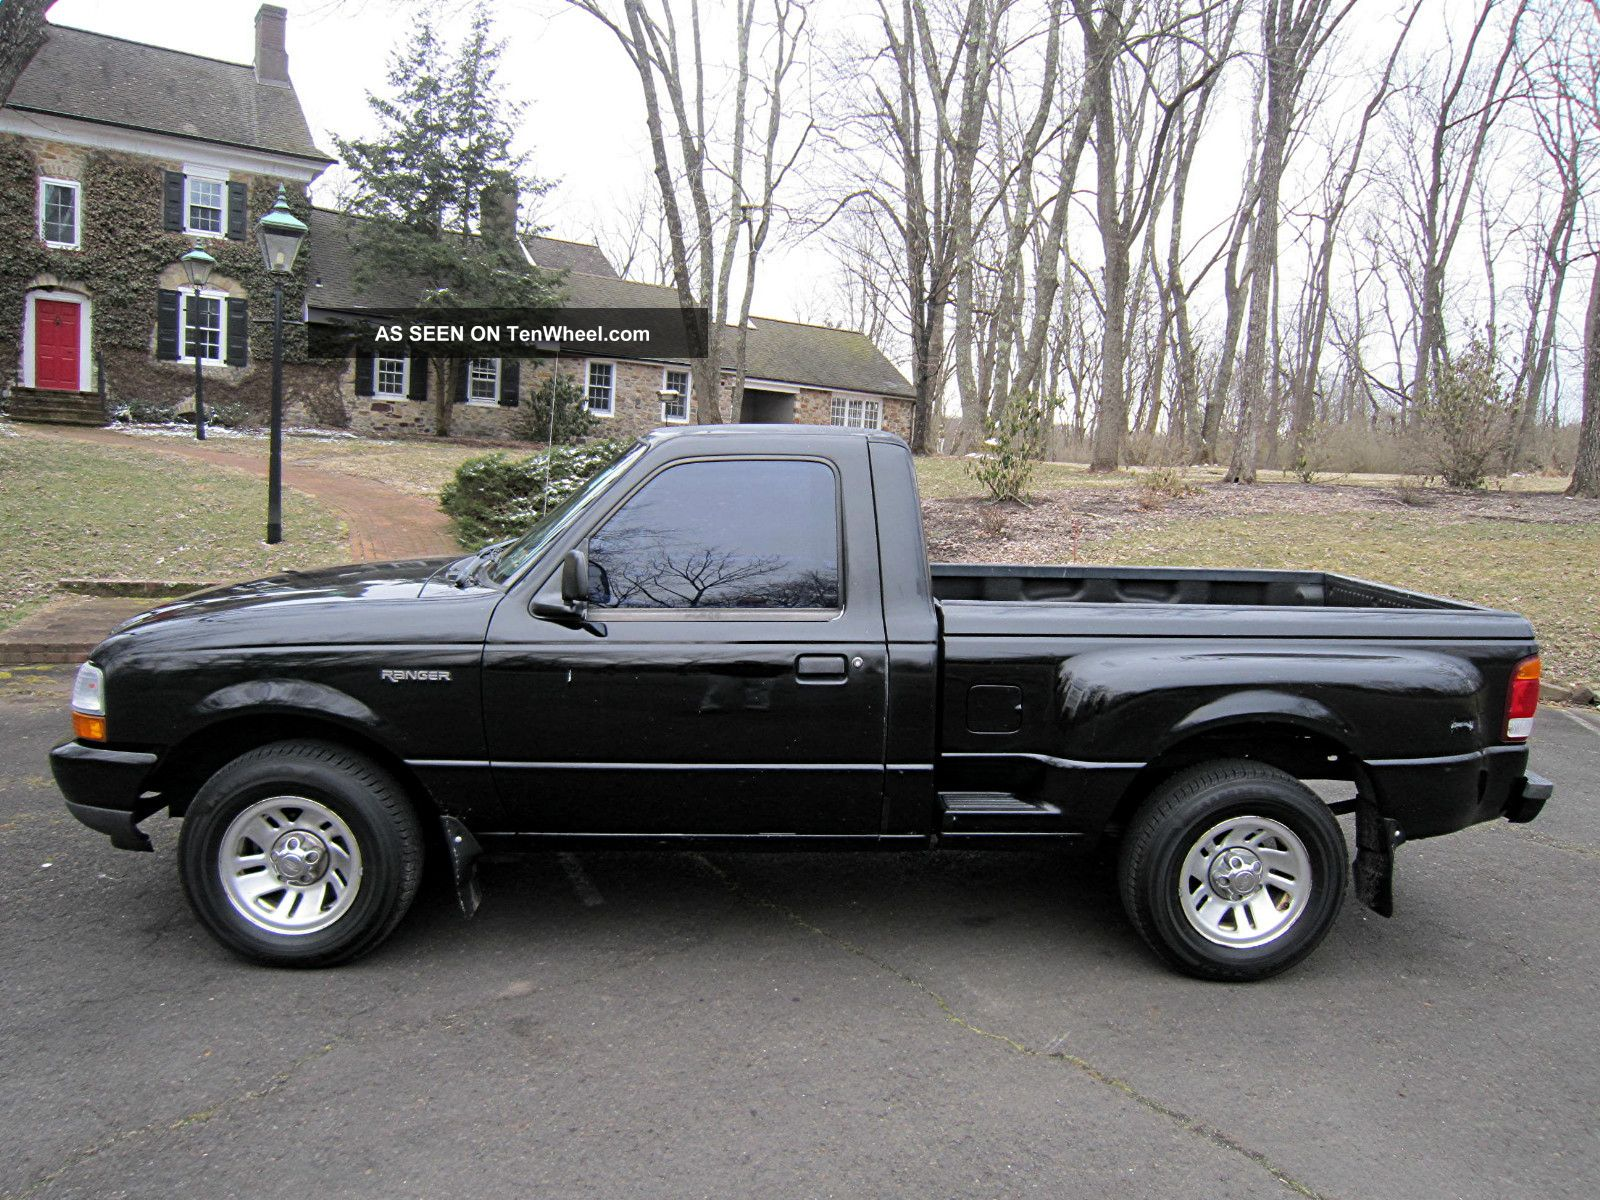 1999 Ford Ranger Step Side Pickup Truck With 5 Speed Manual. . . Ranger photo